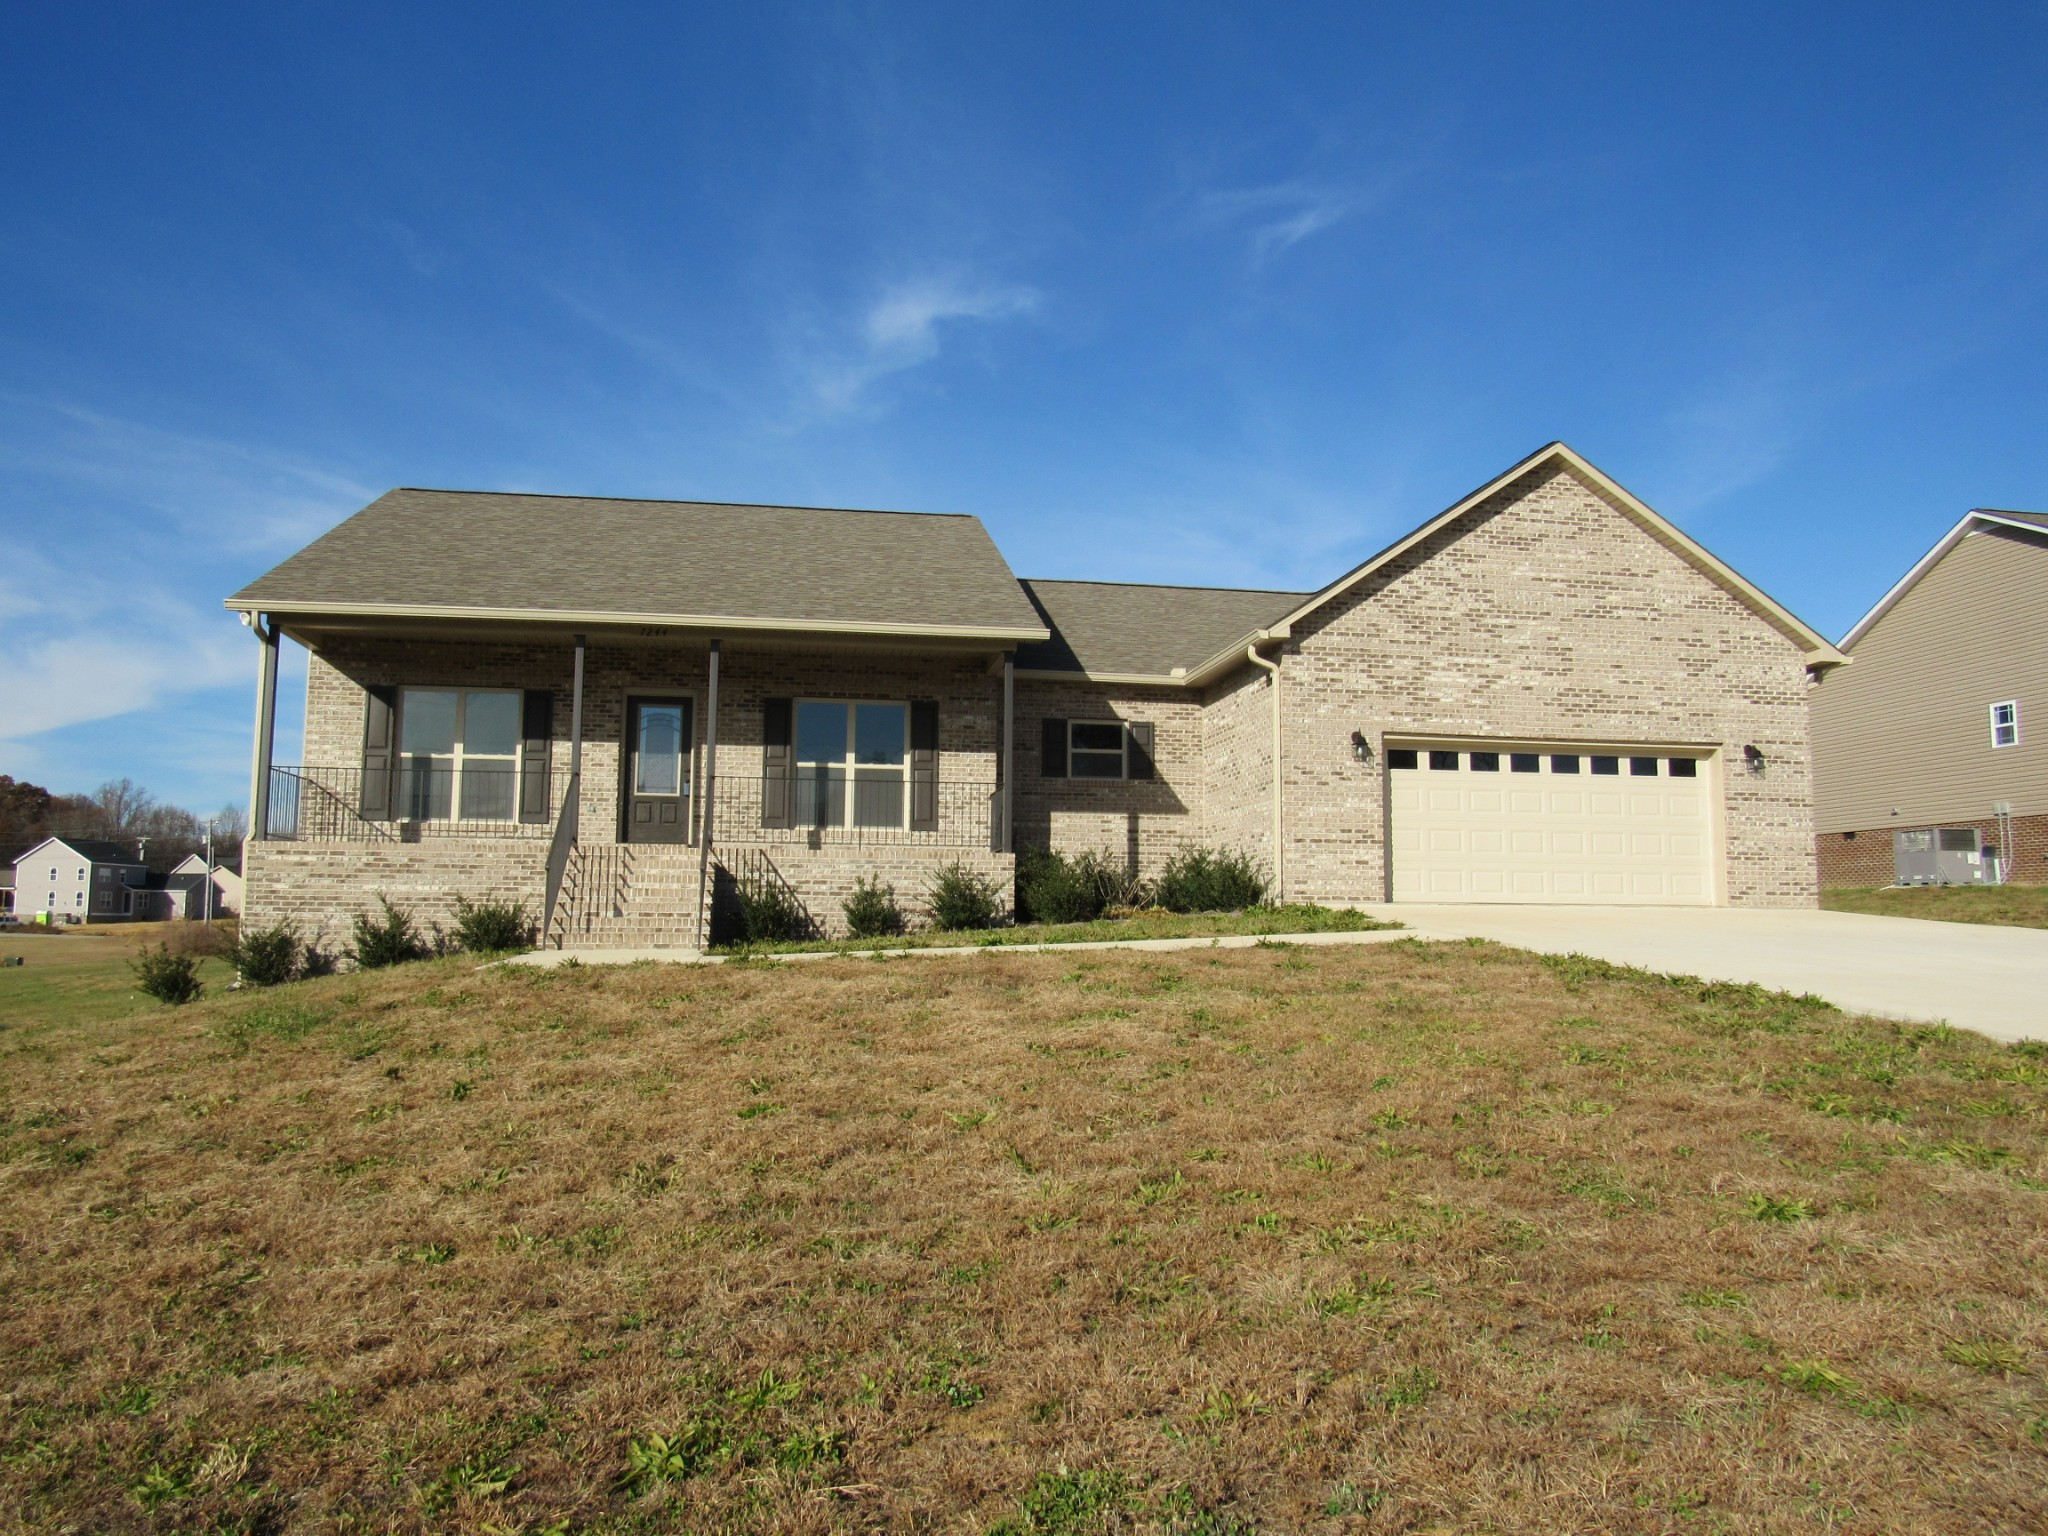 7244 Coleman Cir, Baxter, TN 38544 - Baxter, TN real estate listing